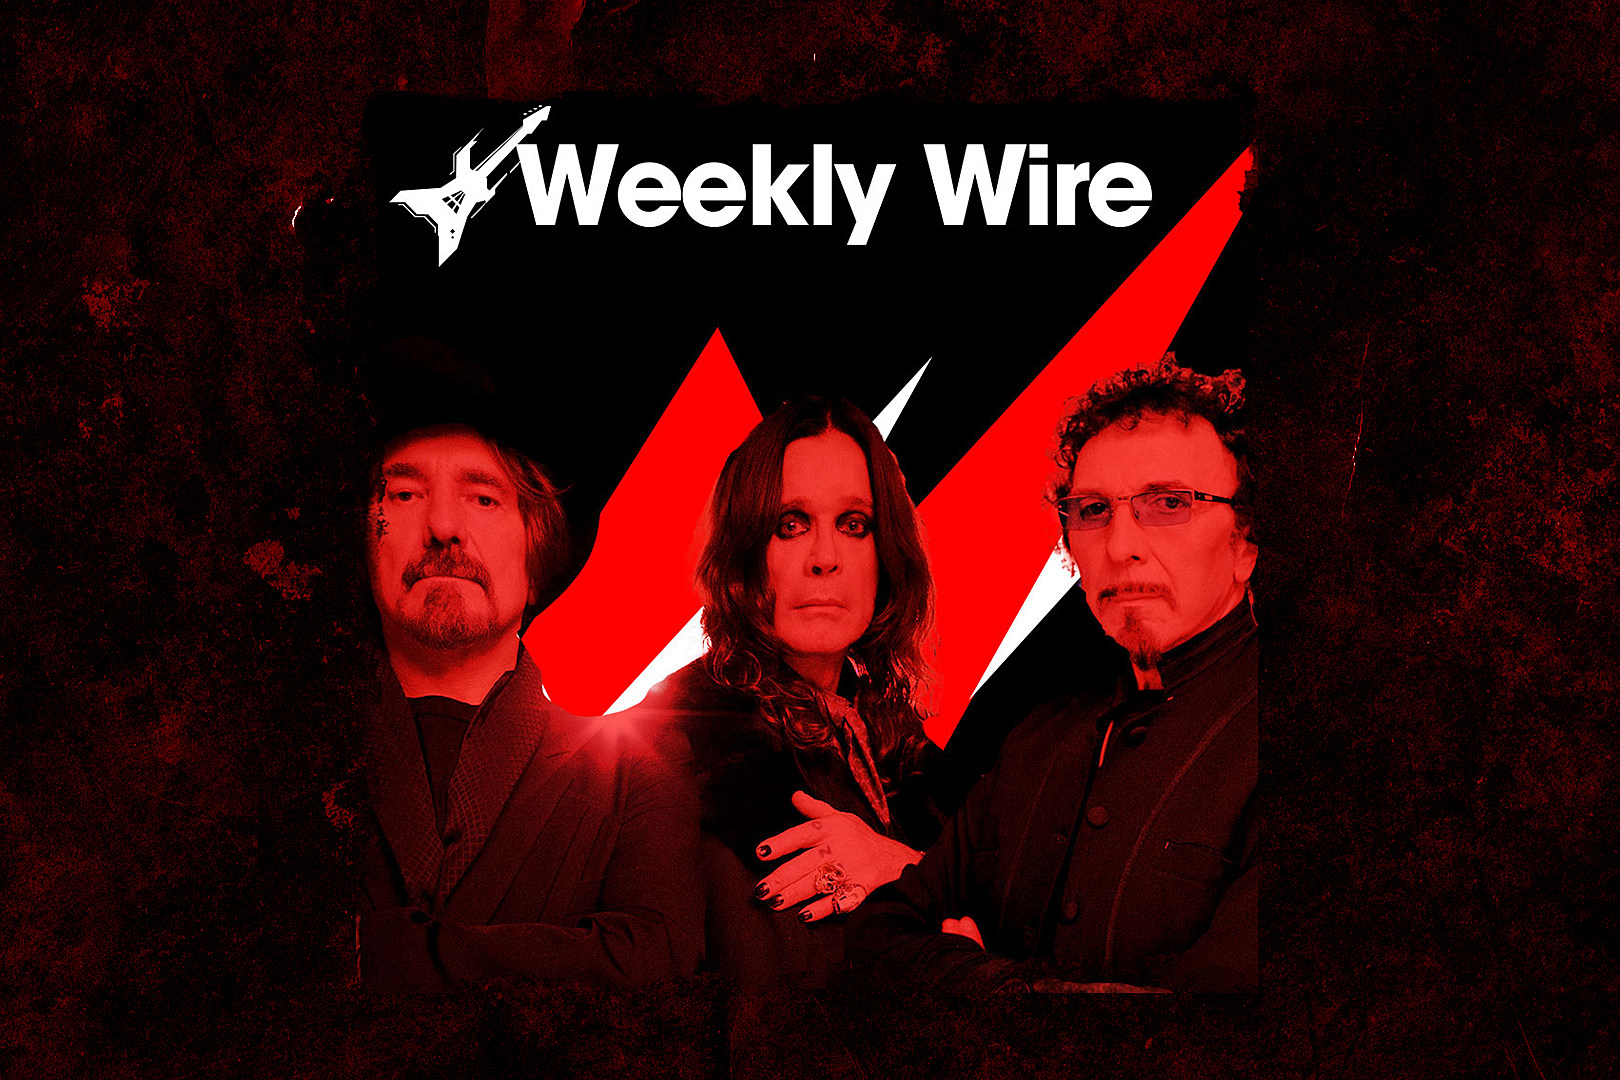 Weekly Wire: Your New Music Playlist of the Week Featuring Black Sabbath, Iron Maiden + More